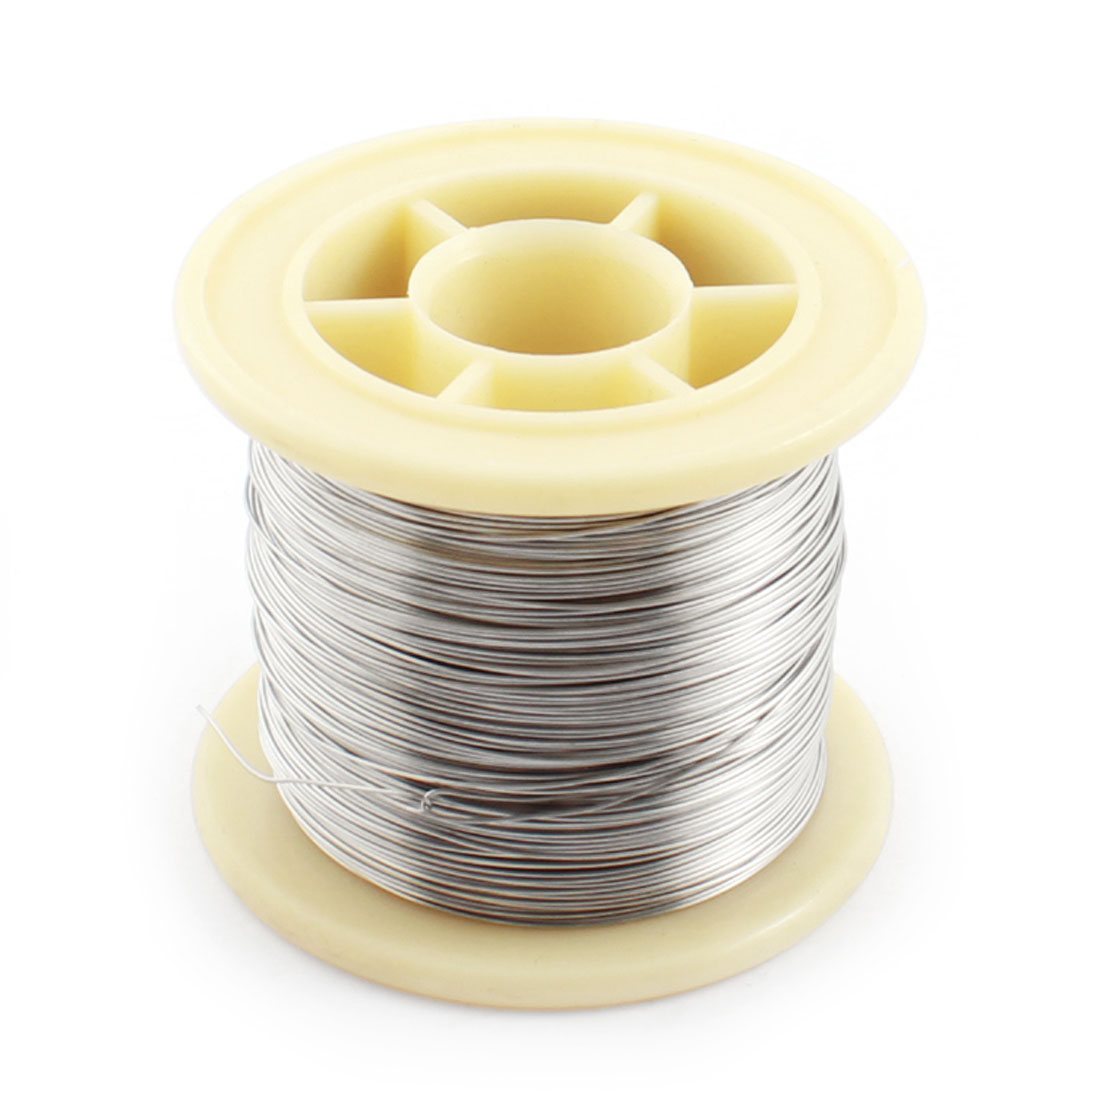 50meter 165ft Length 0.4mm Diameter AWG26 Nichrome Resistance Heating Coils Resistor Wire for Frigidaire Heater